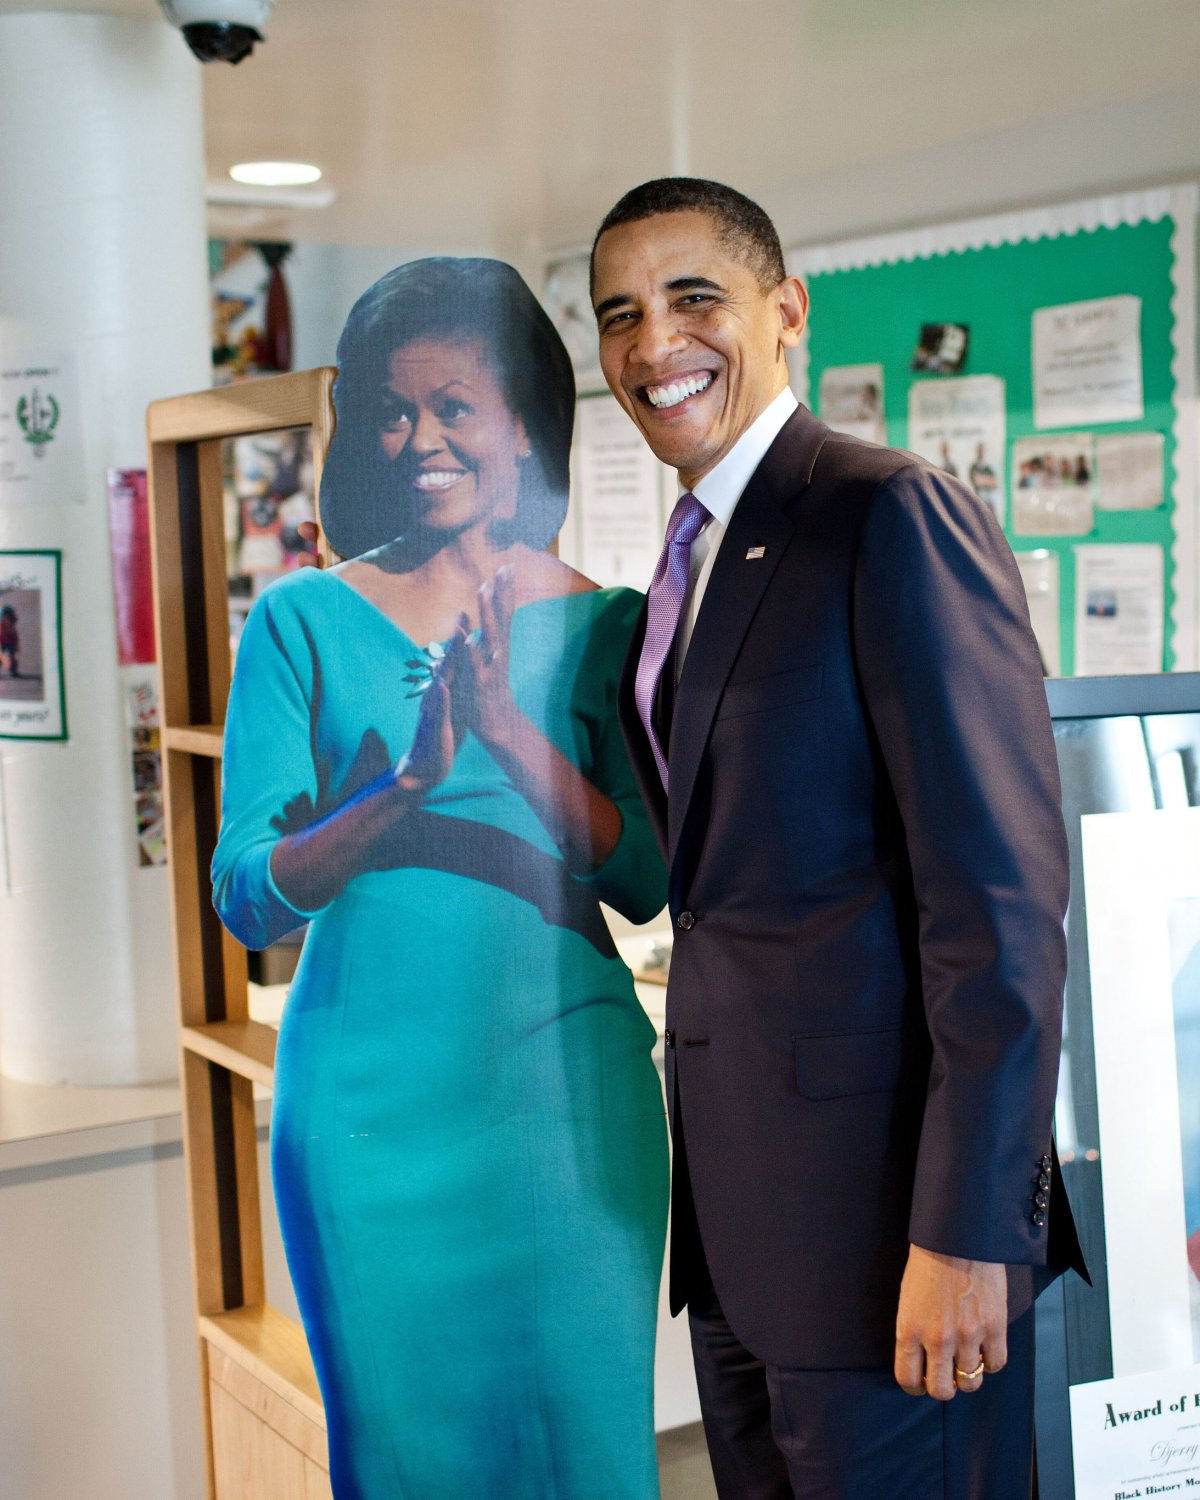 BARACK OBAMA & CUT-OUT OF MICHELLE ON VISIT TO MIAMI SCHOOL 8X10 PHOTO (ZY-390)